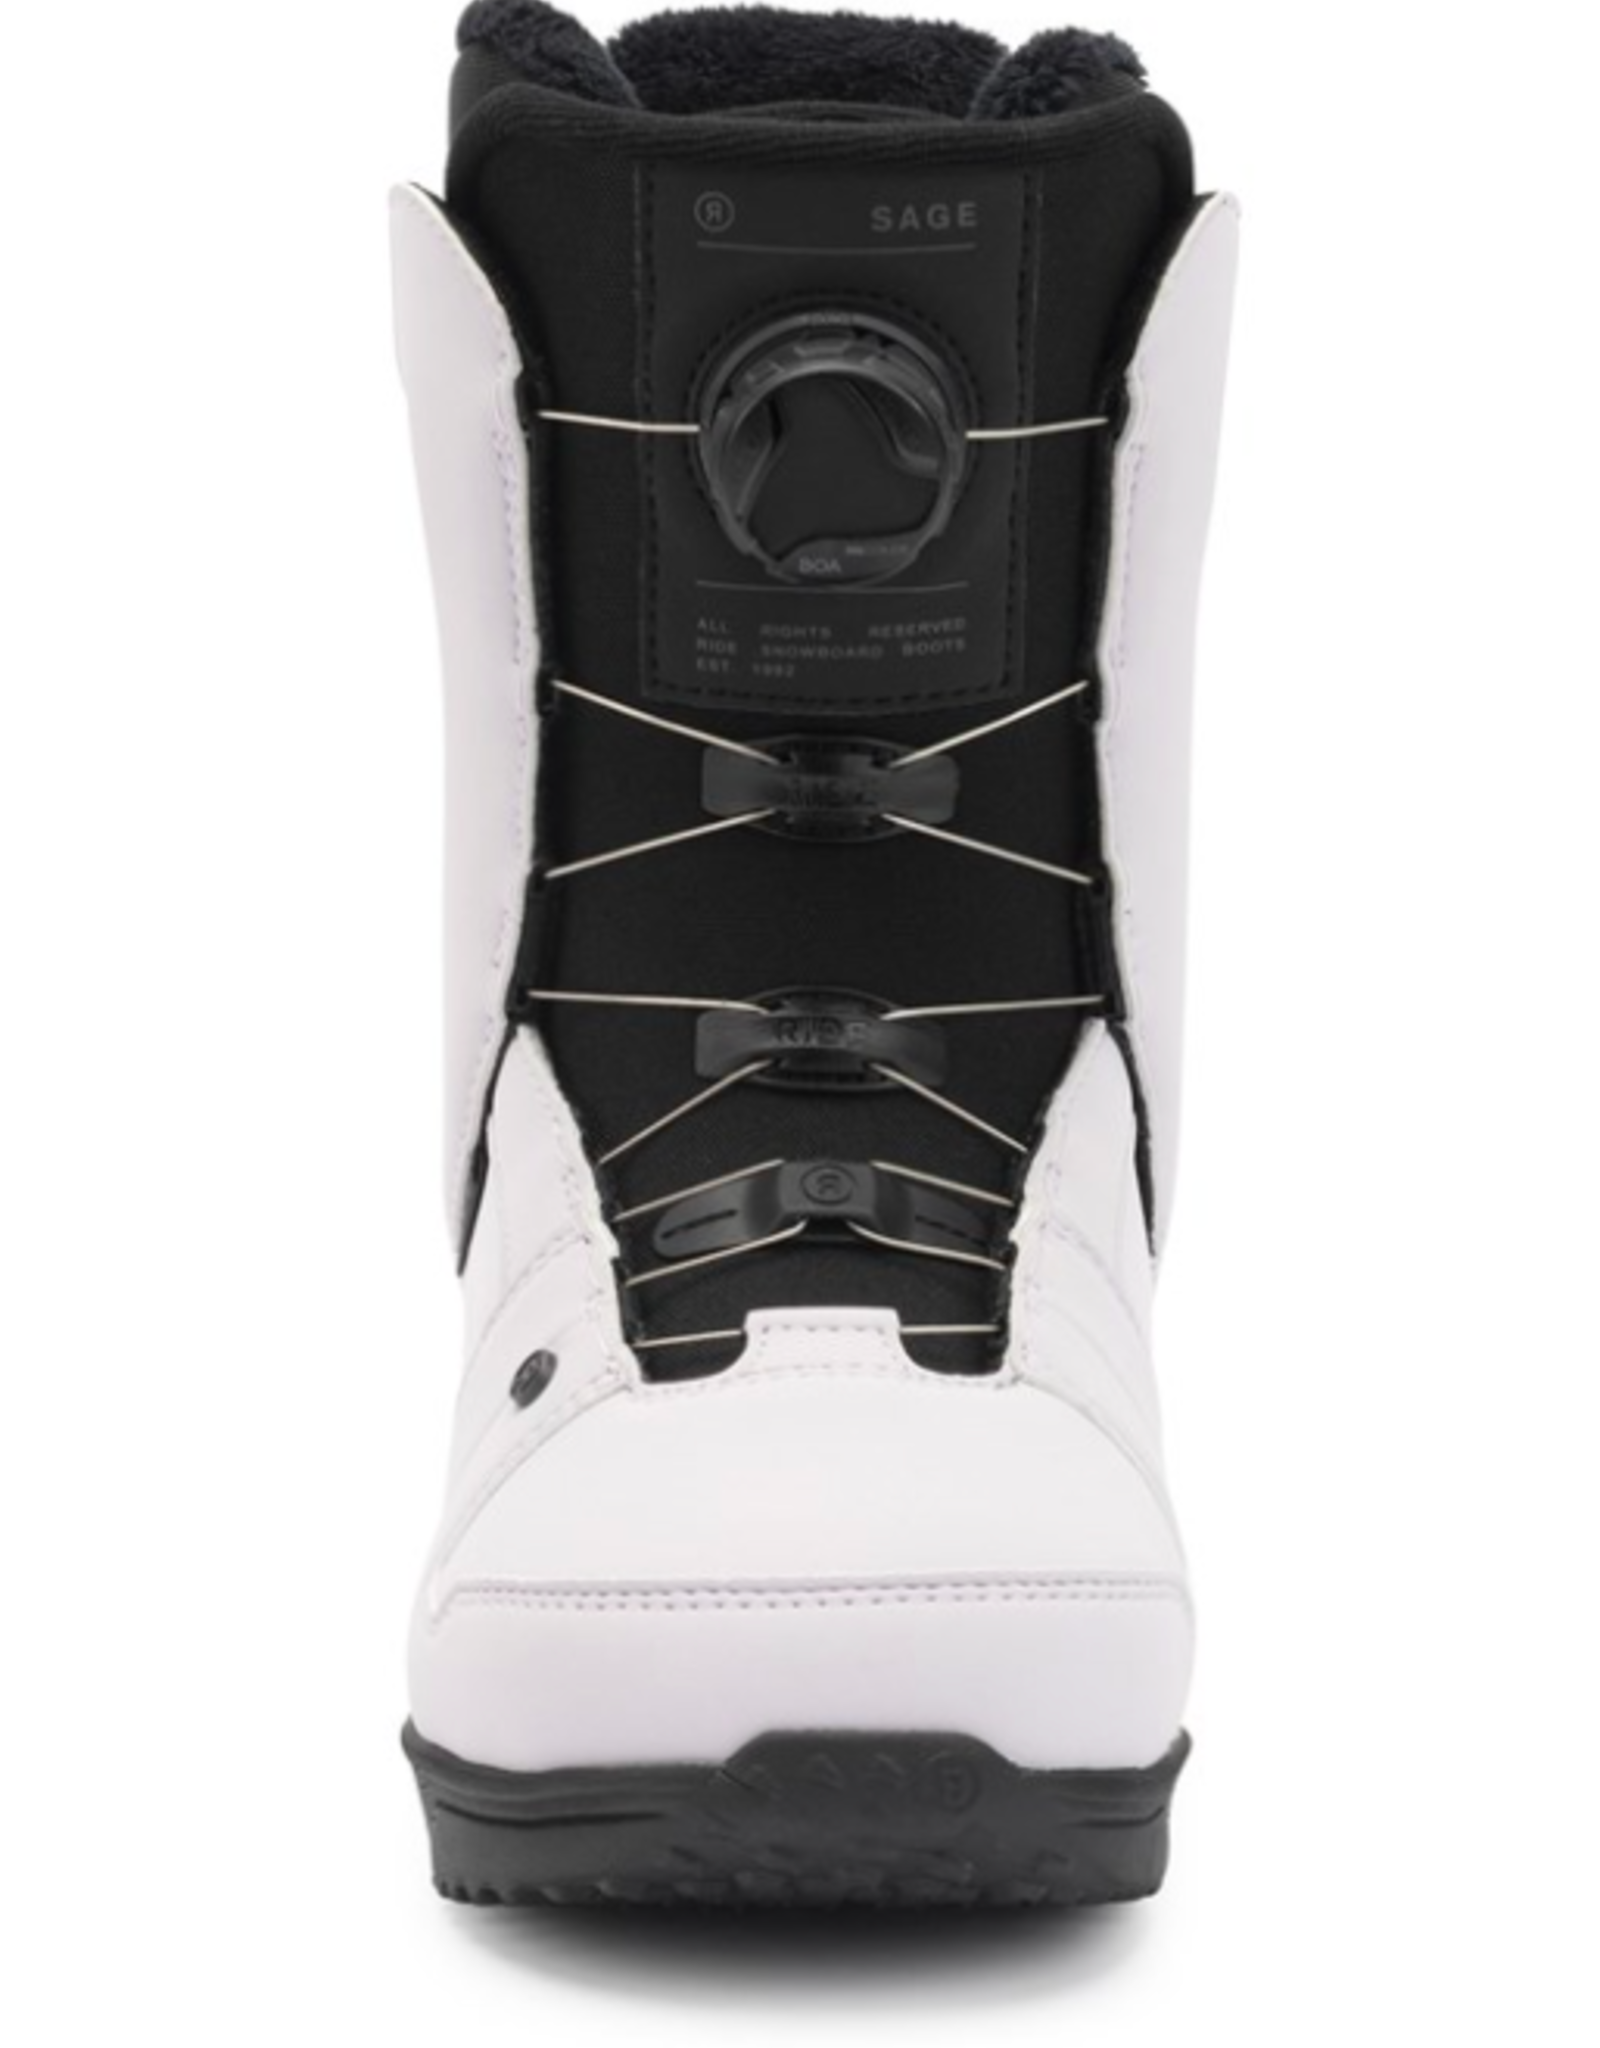 RIDE Ride Women's Sage Snowboard Boots Lilac 2022